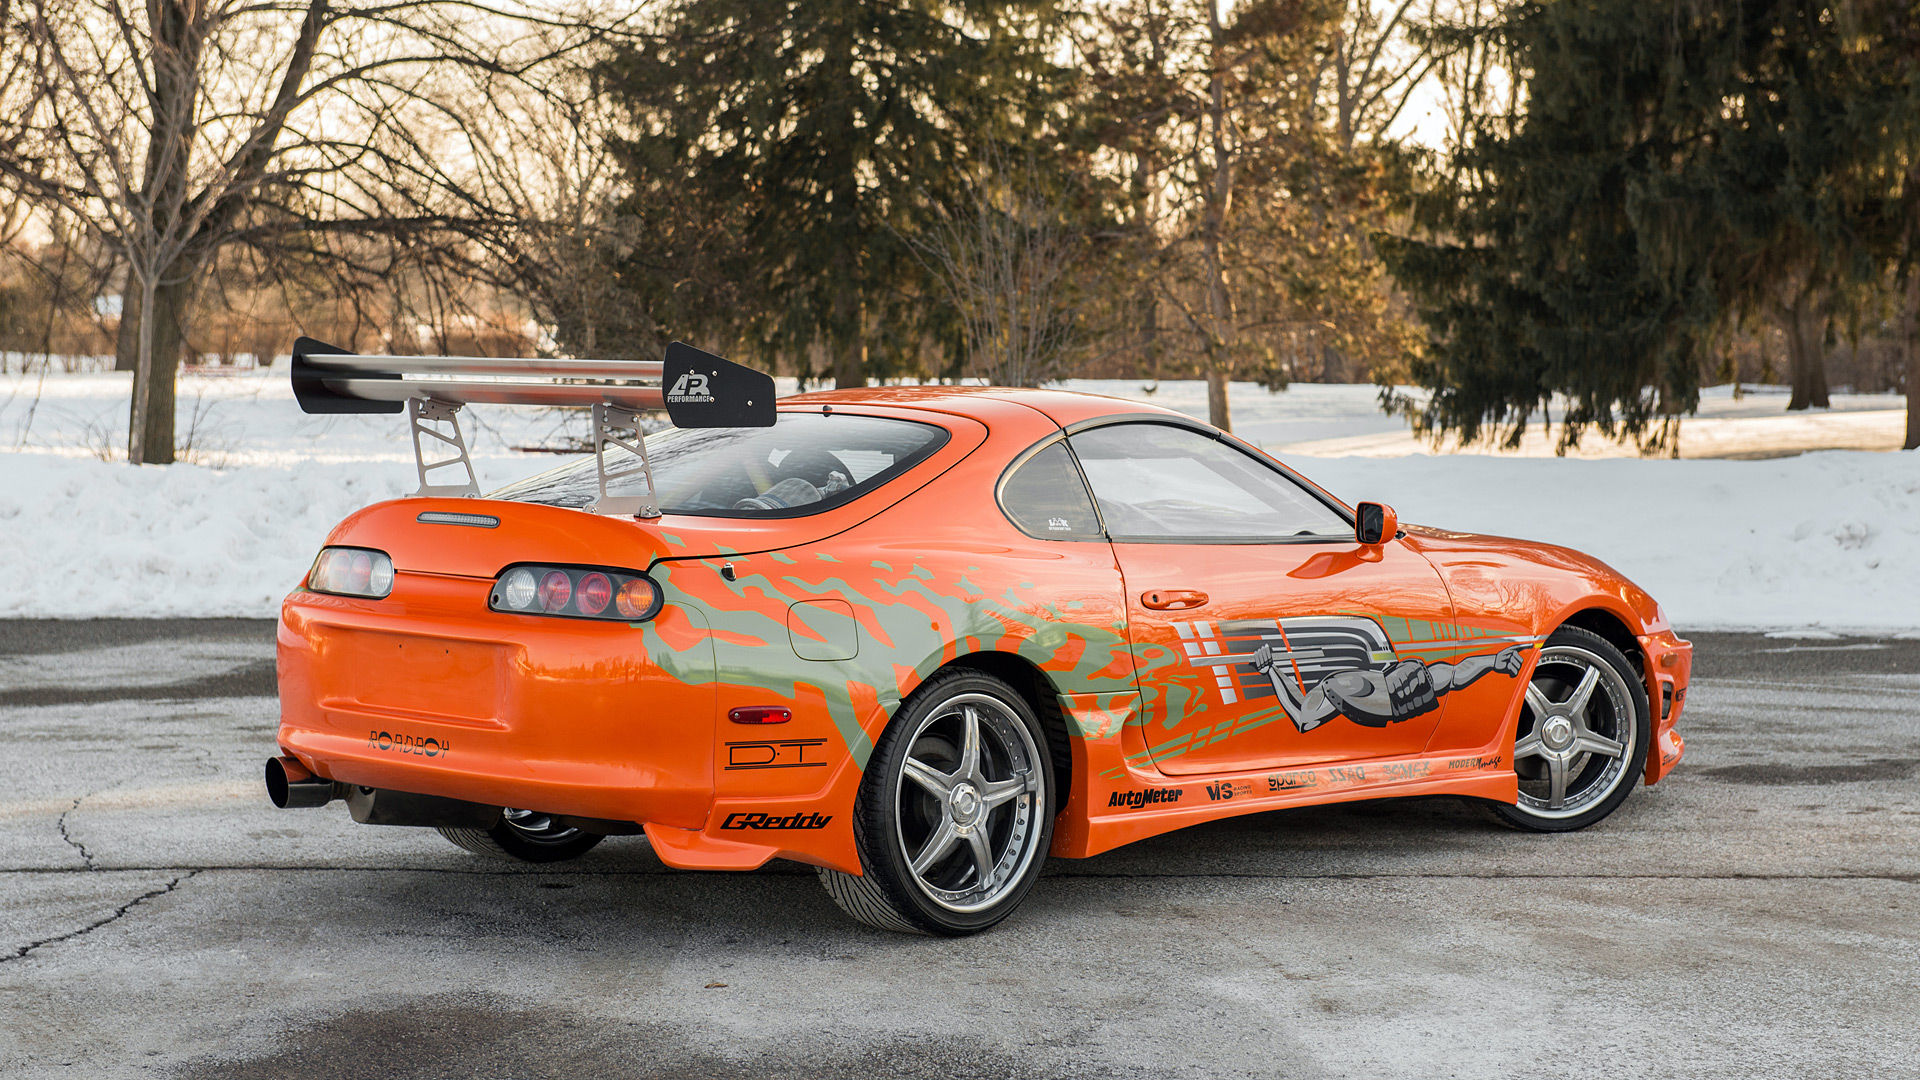 2001 Toyota Supra The Fast and the Furious